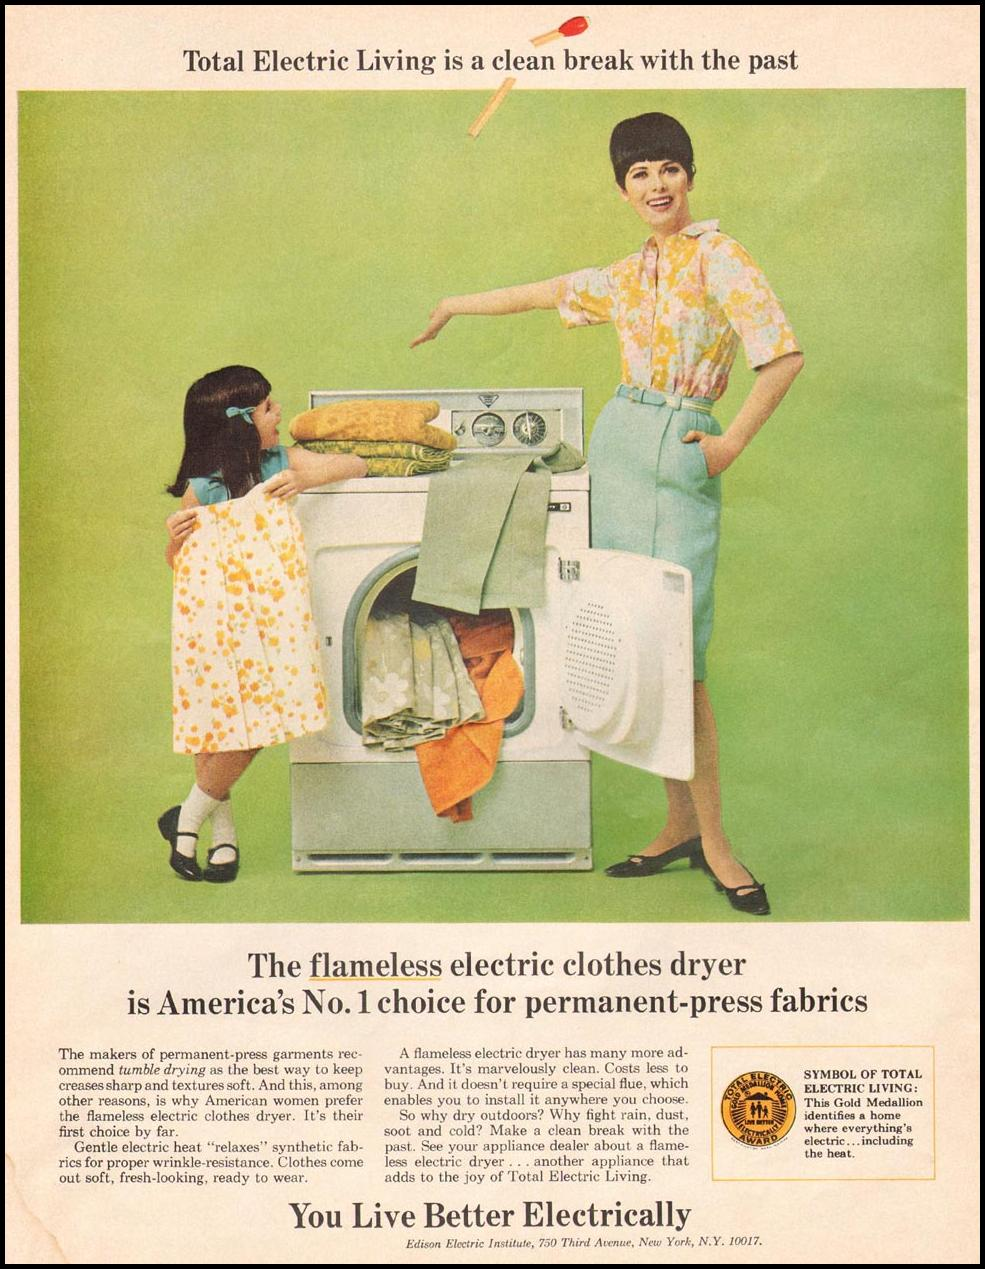 ELECTRIC APPLIANCES LIFE 12/22/1967